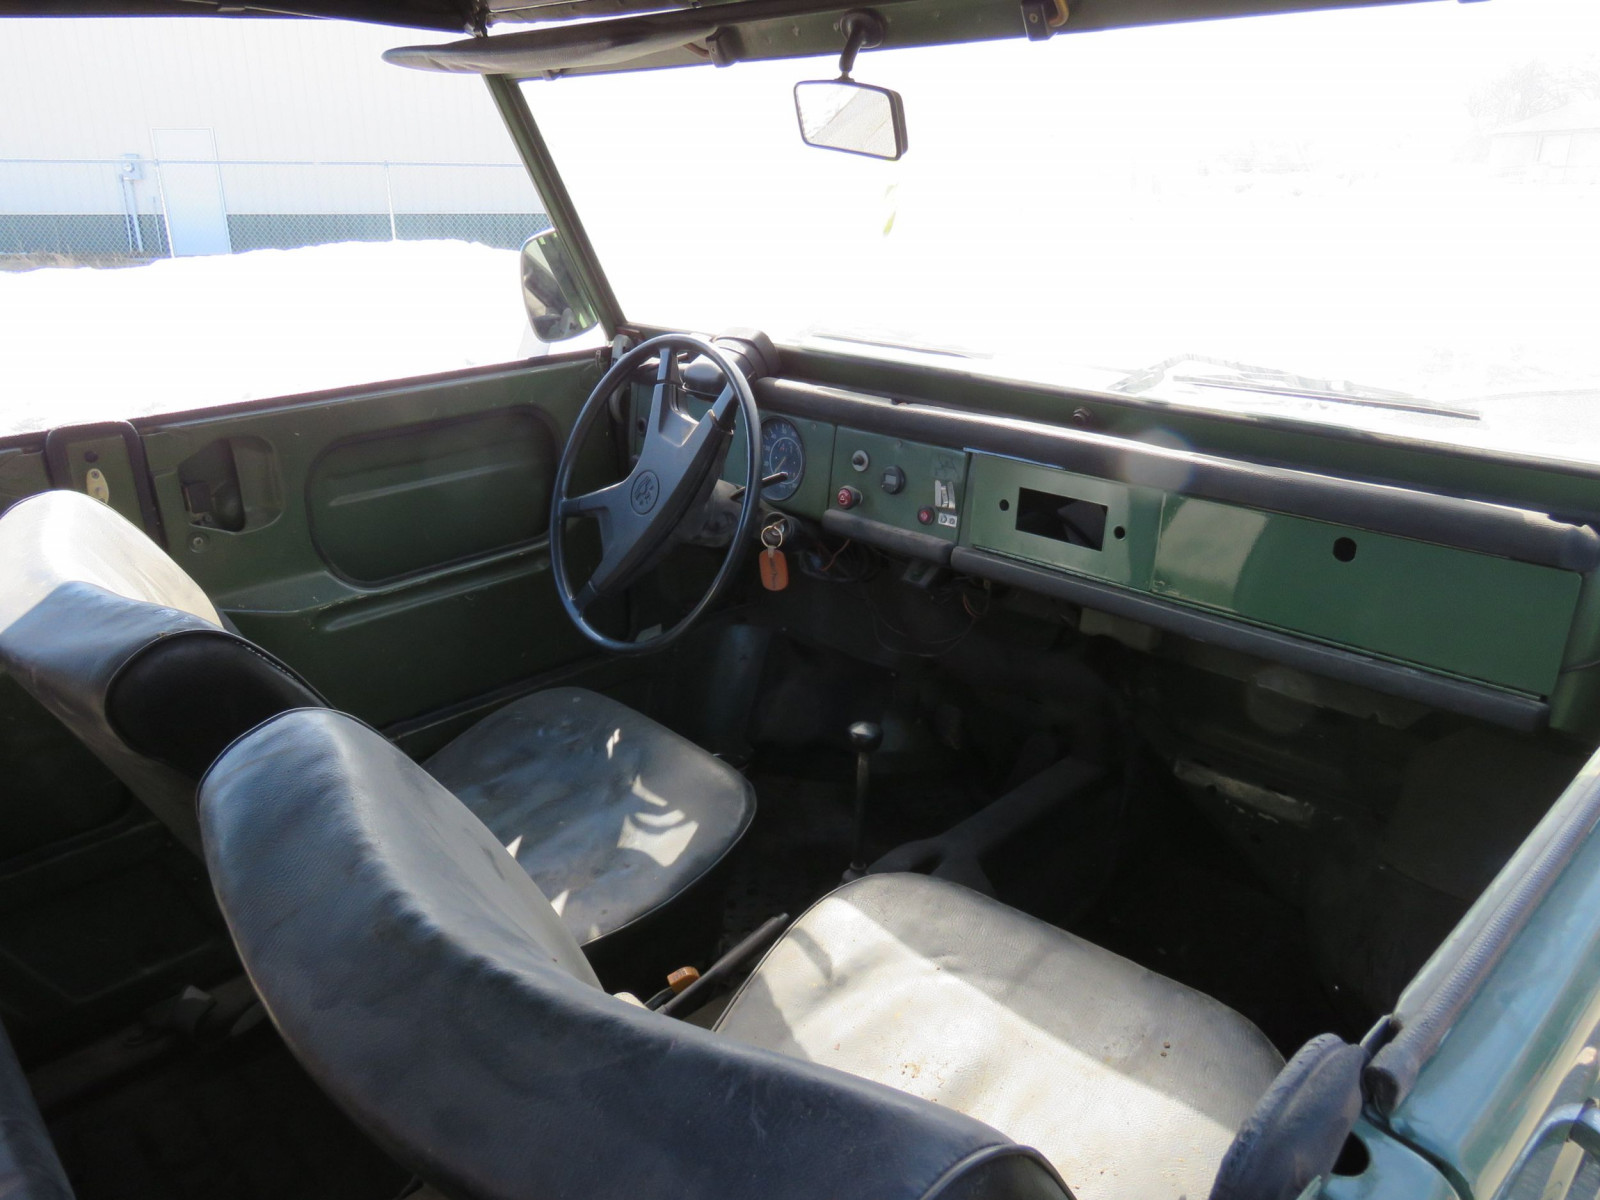 1974 Volkswagen Thing - Image 13